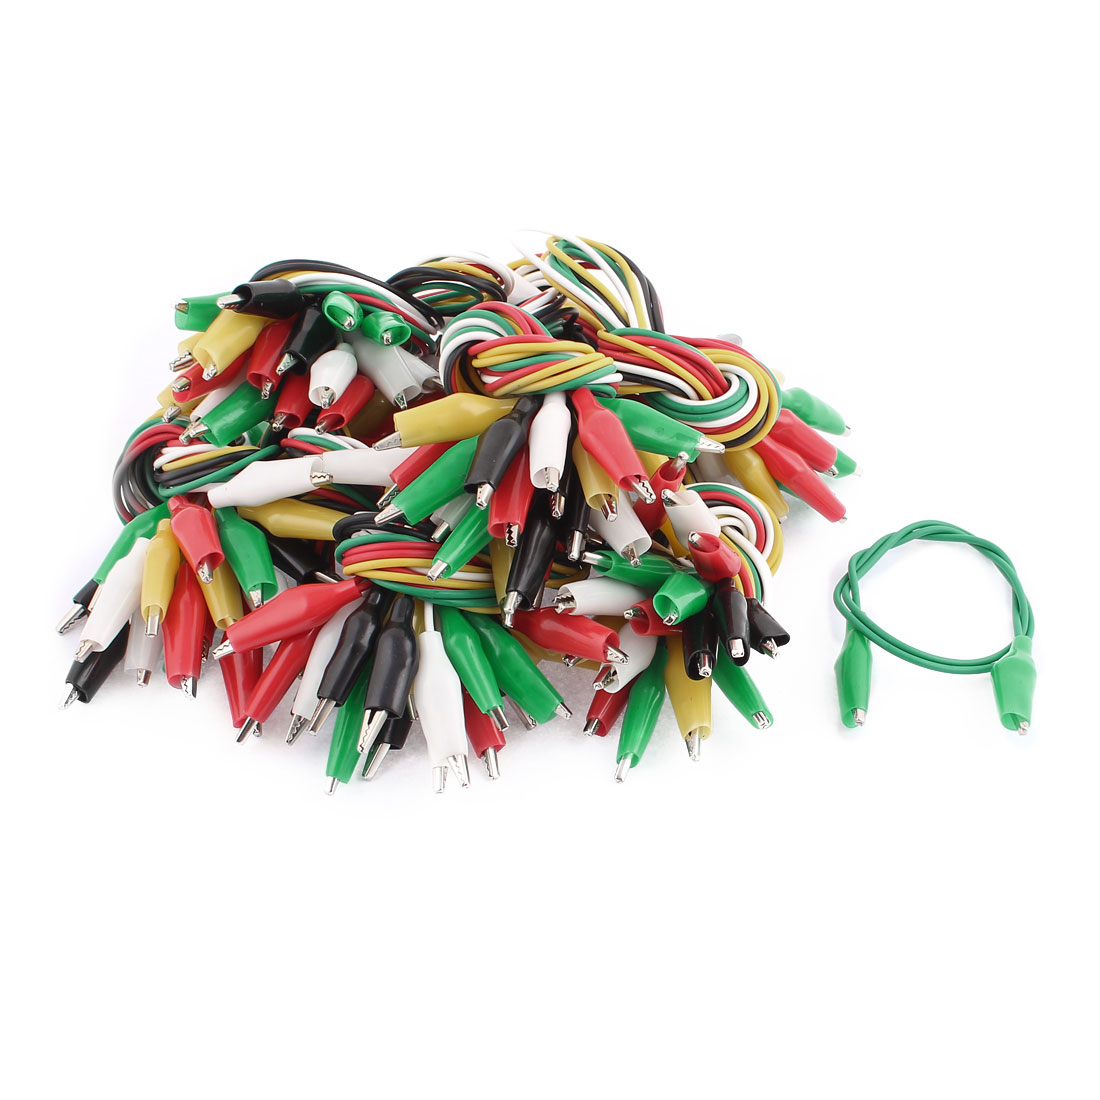 """20"""" Length Double-ended Alligator Crocodile Clips Test Jumper Wire 80Pcs"""